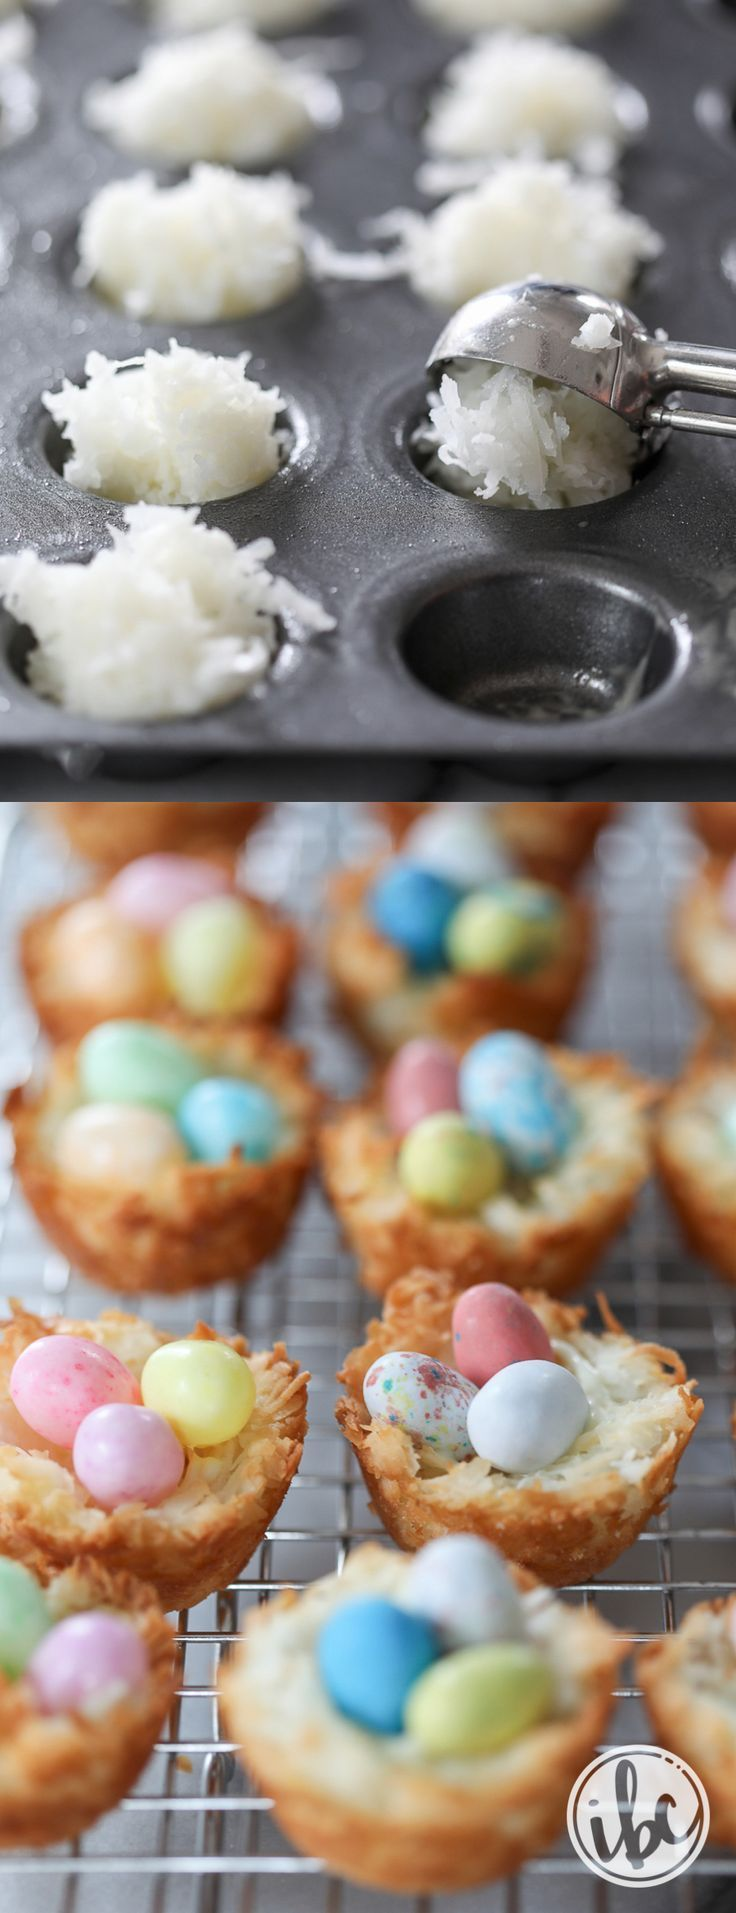 291 best easter images on pinterest easter bread and breads coconut macaroon nests easter gifts negle Images